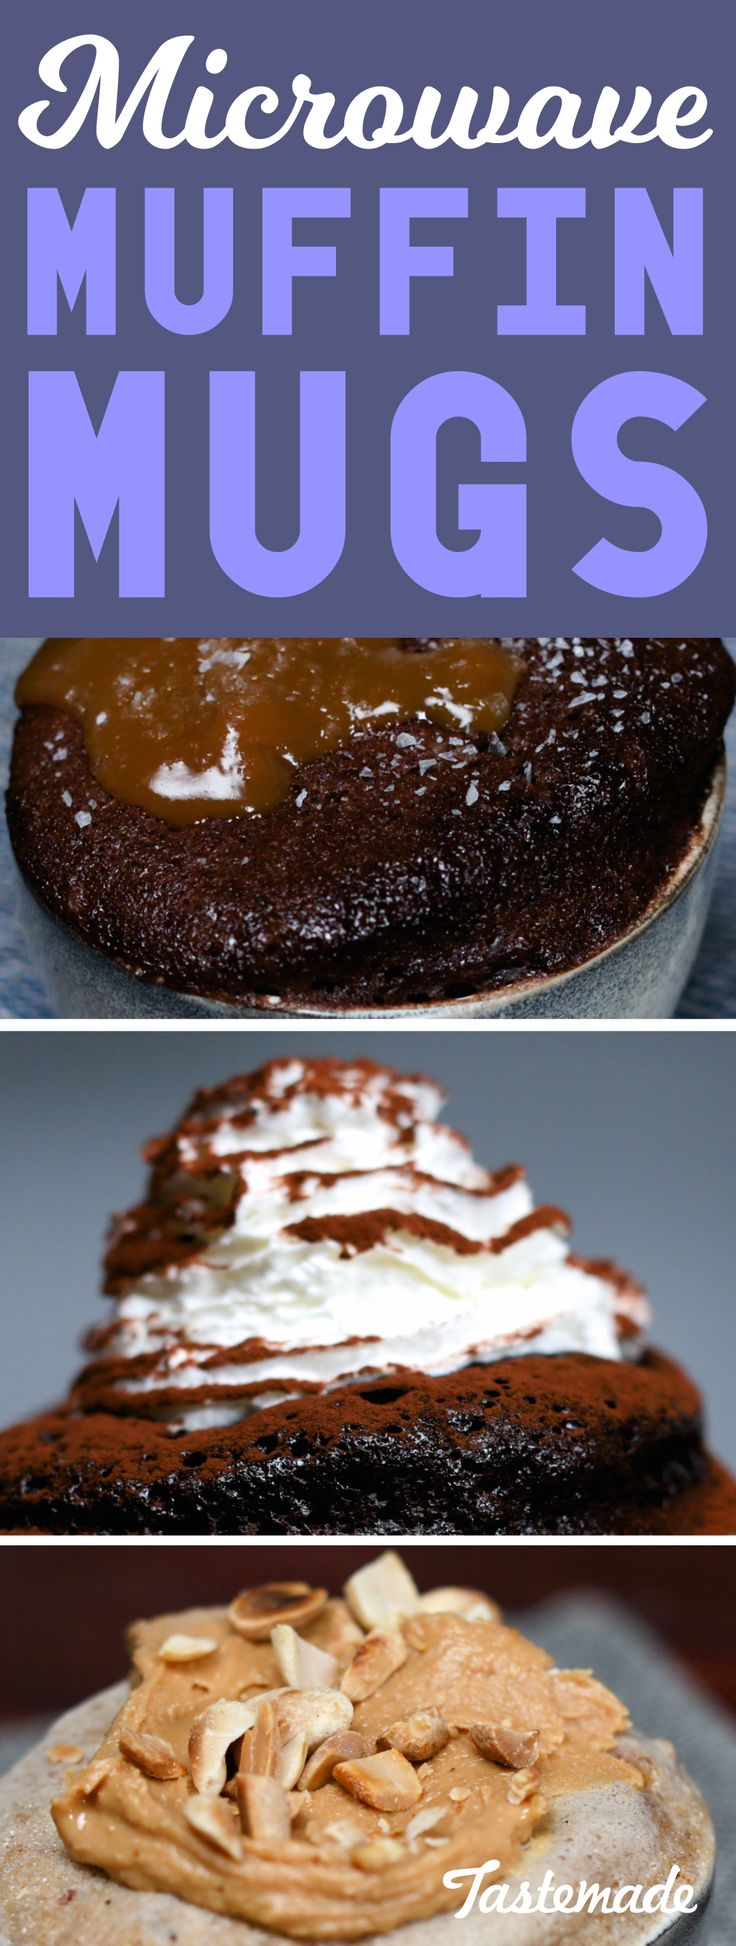 Who knew you could create such moreish desserts in the microwave!?